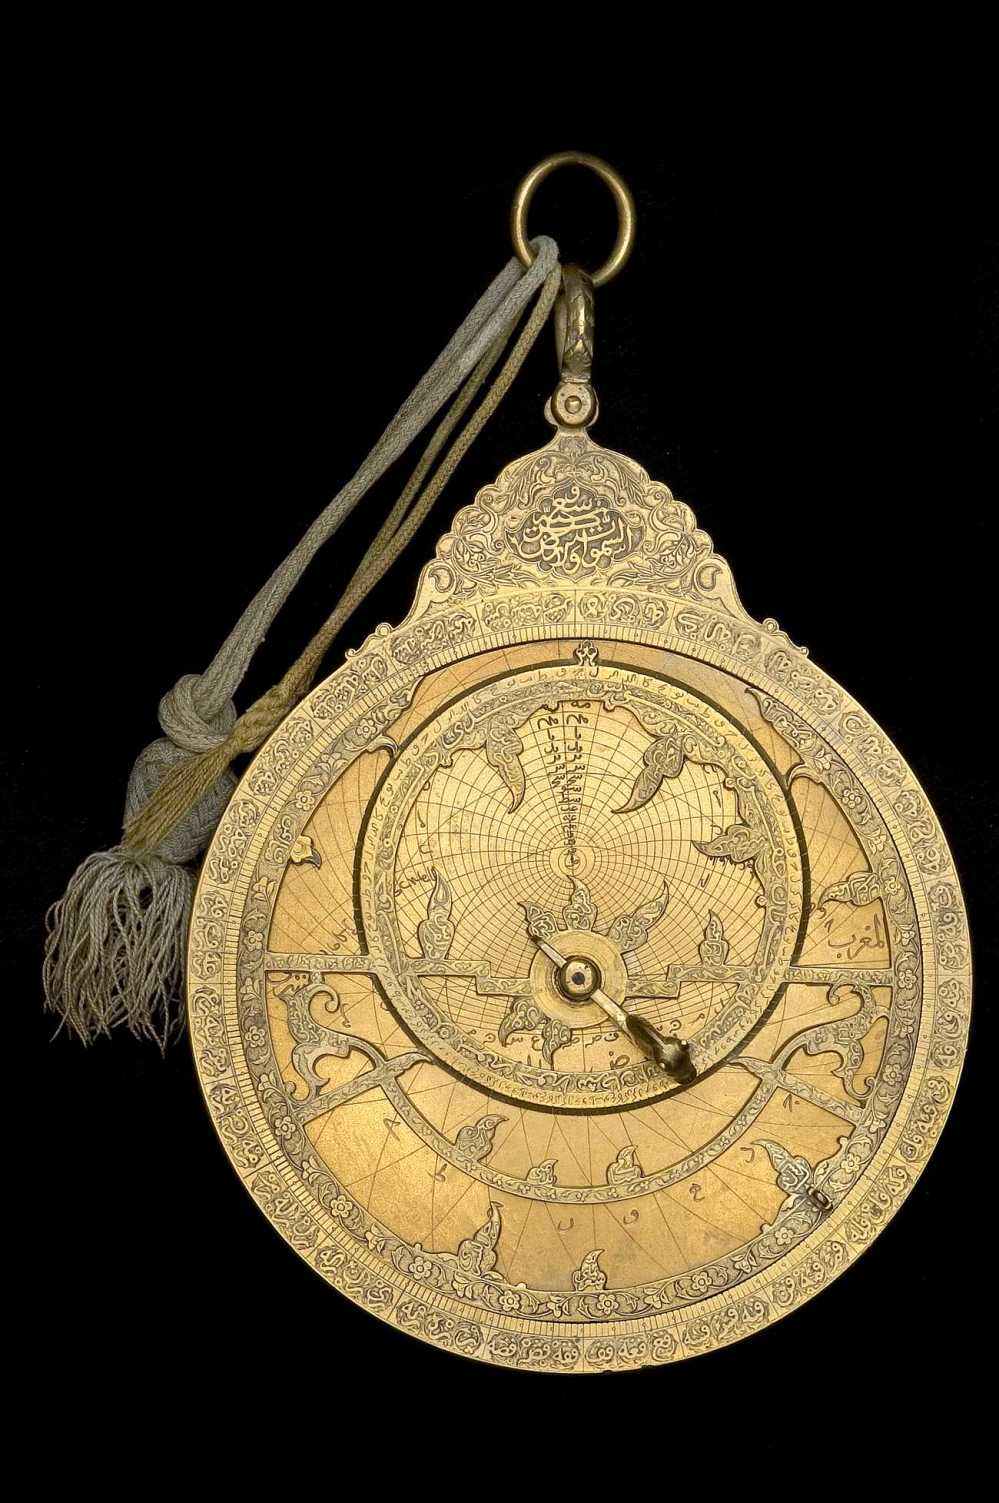 preview image for Astrolabe, by Khalil Muhammad and Abd al-A'imma, Persian, 1707/8